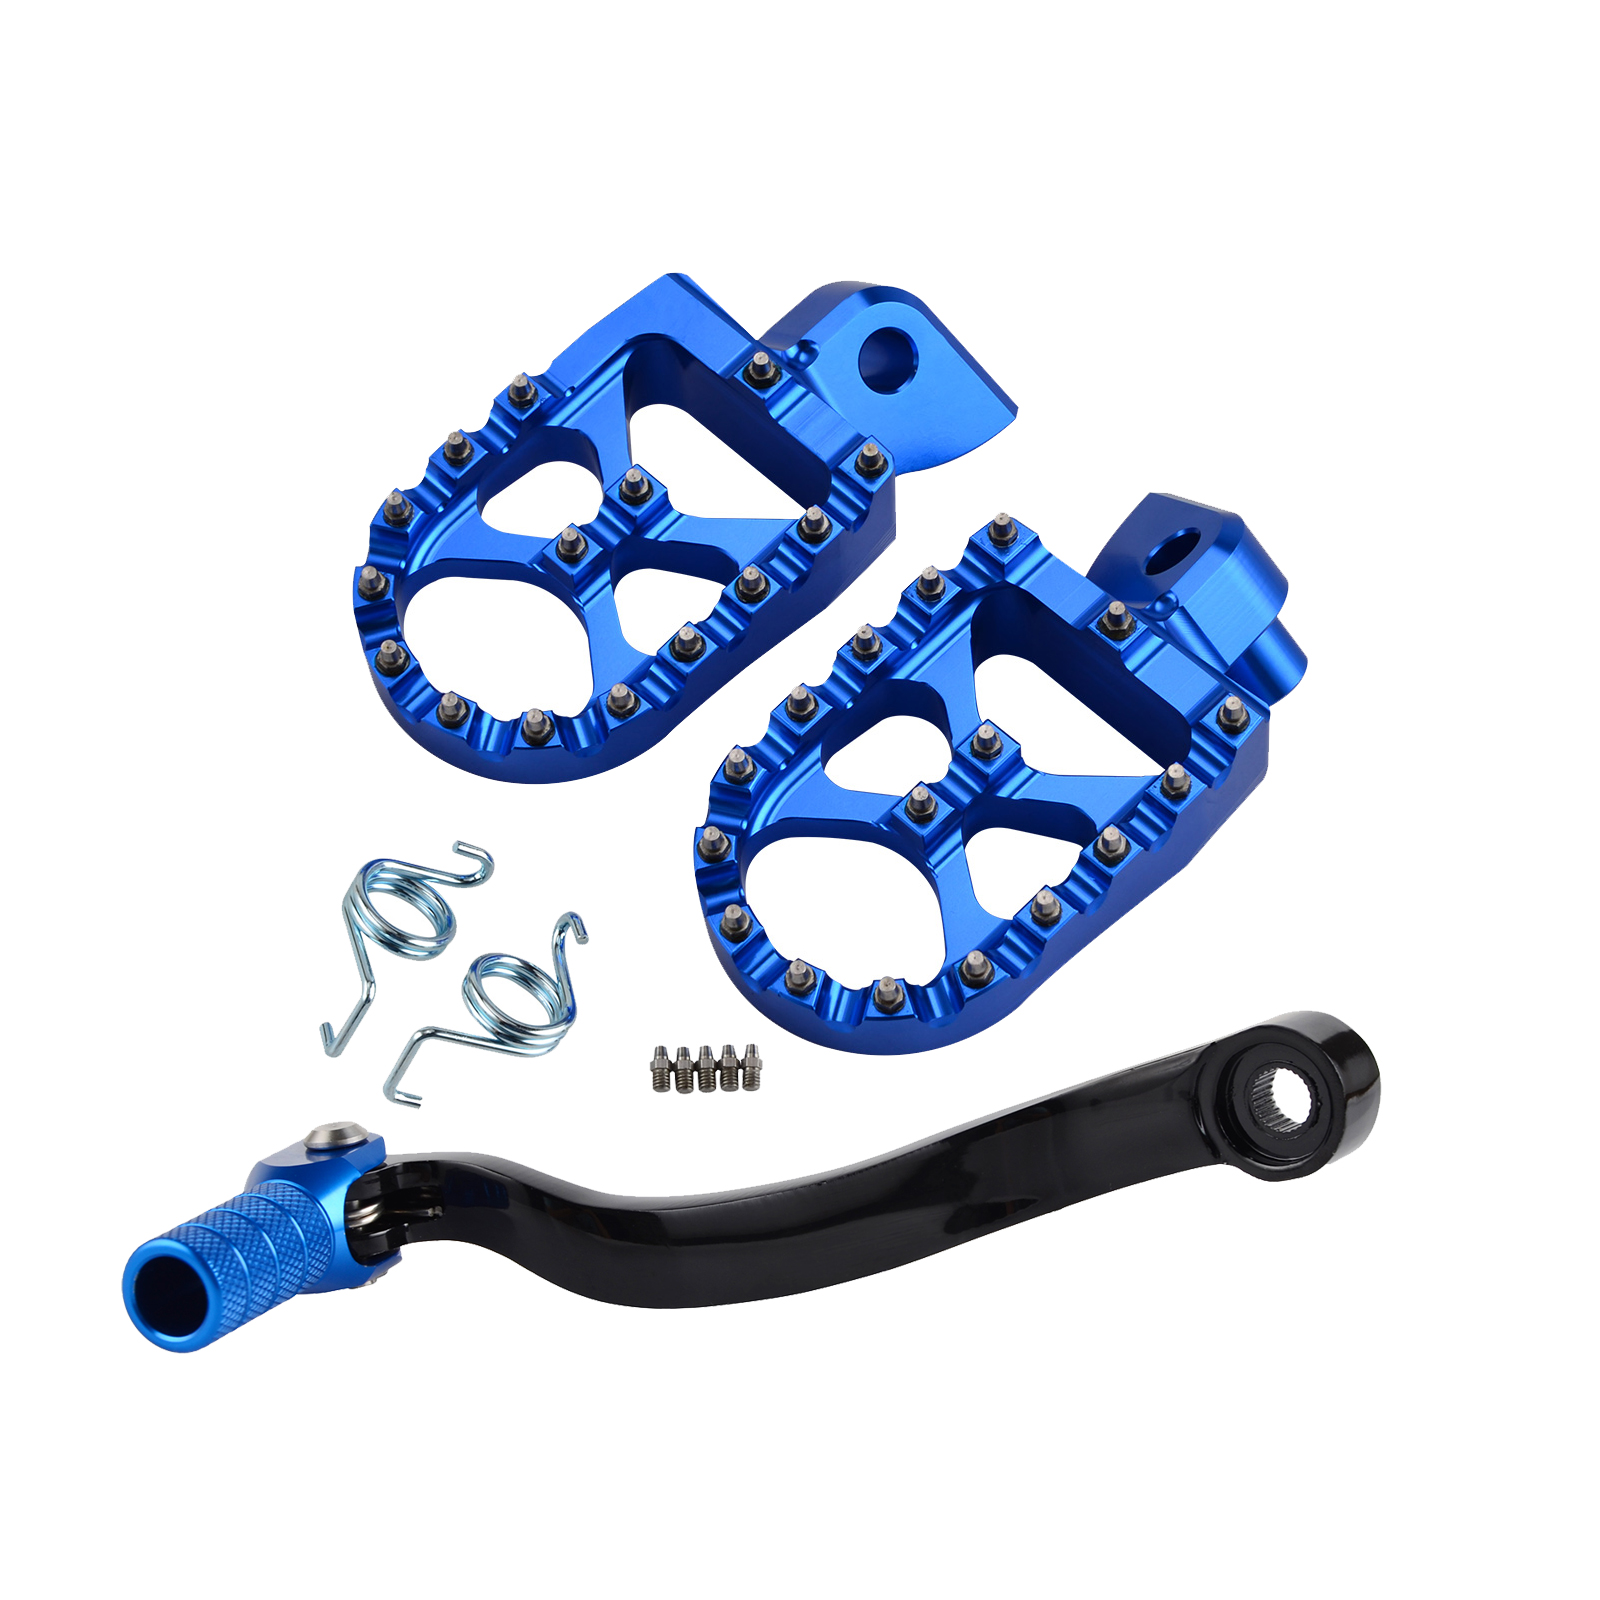 CNC Blue Folding Gear Shift Lever Foot Pedal For Yamaha YZ450F 450FX 2014-2019